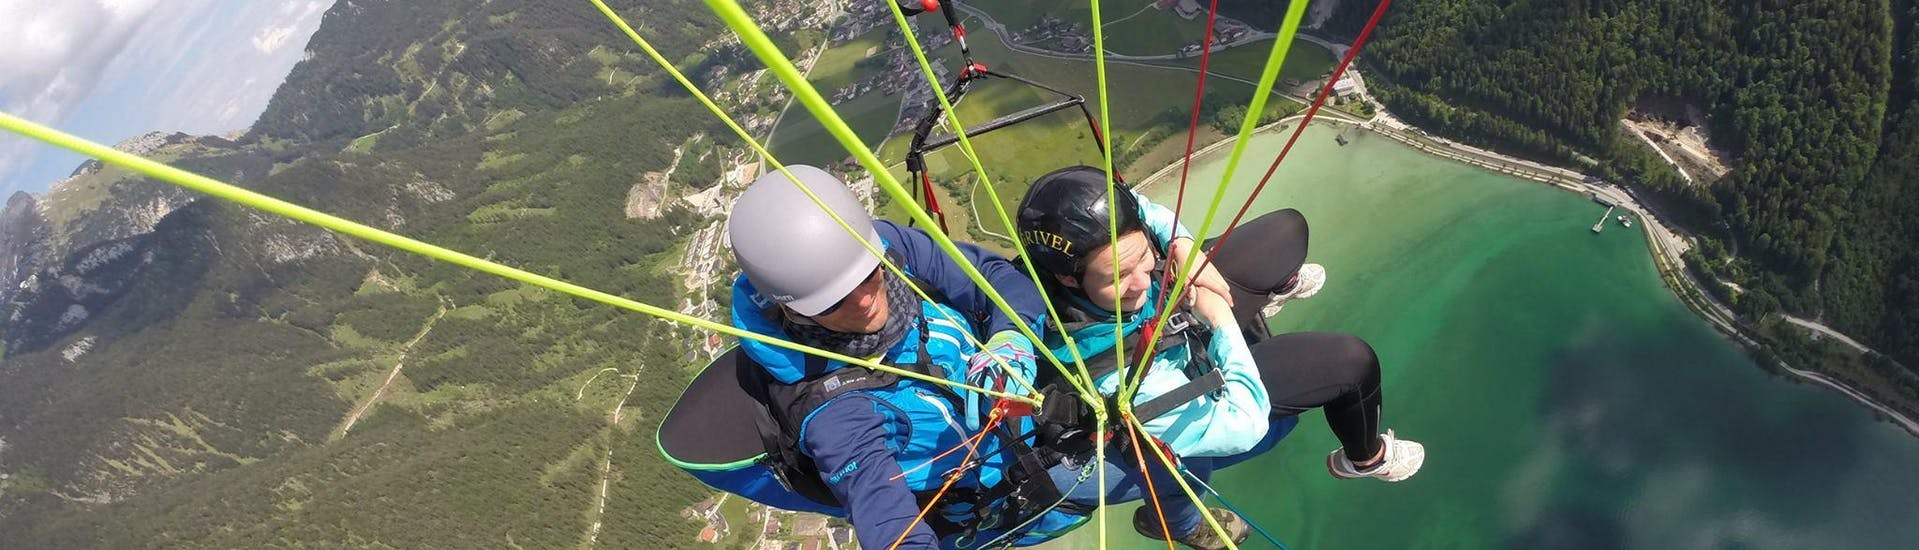 Tandem Paragliding over Achensee - Discovery Flight